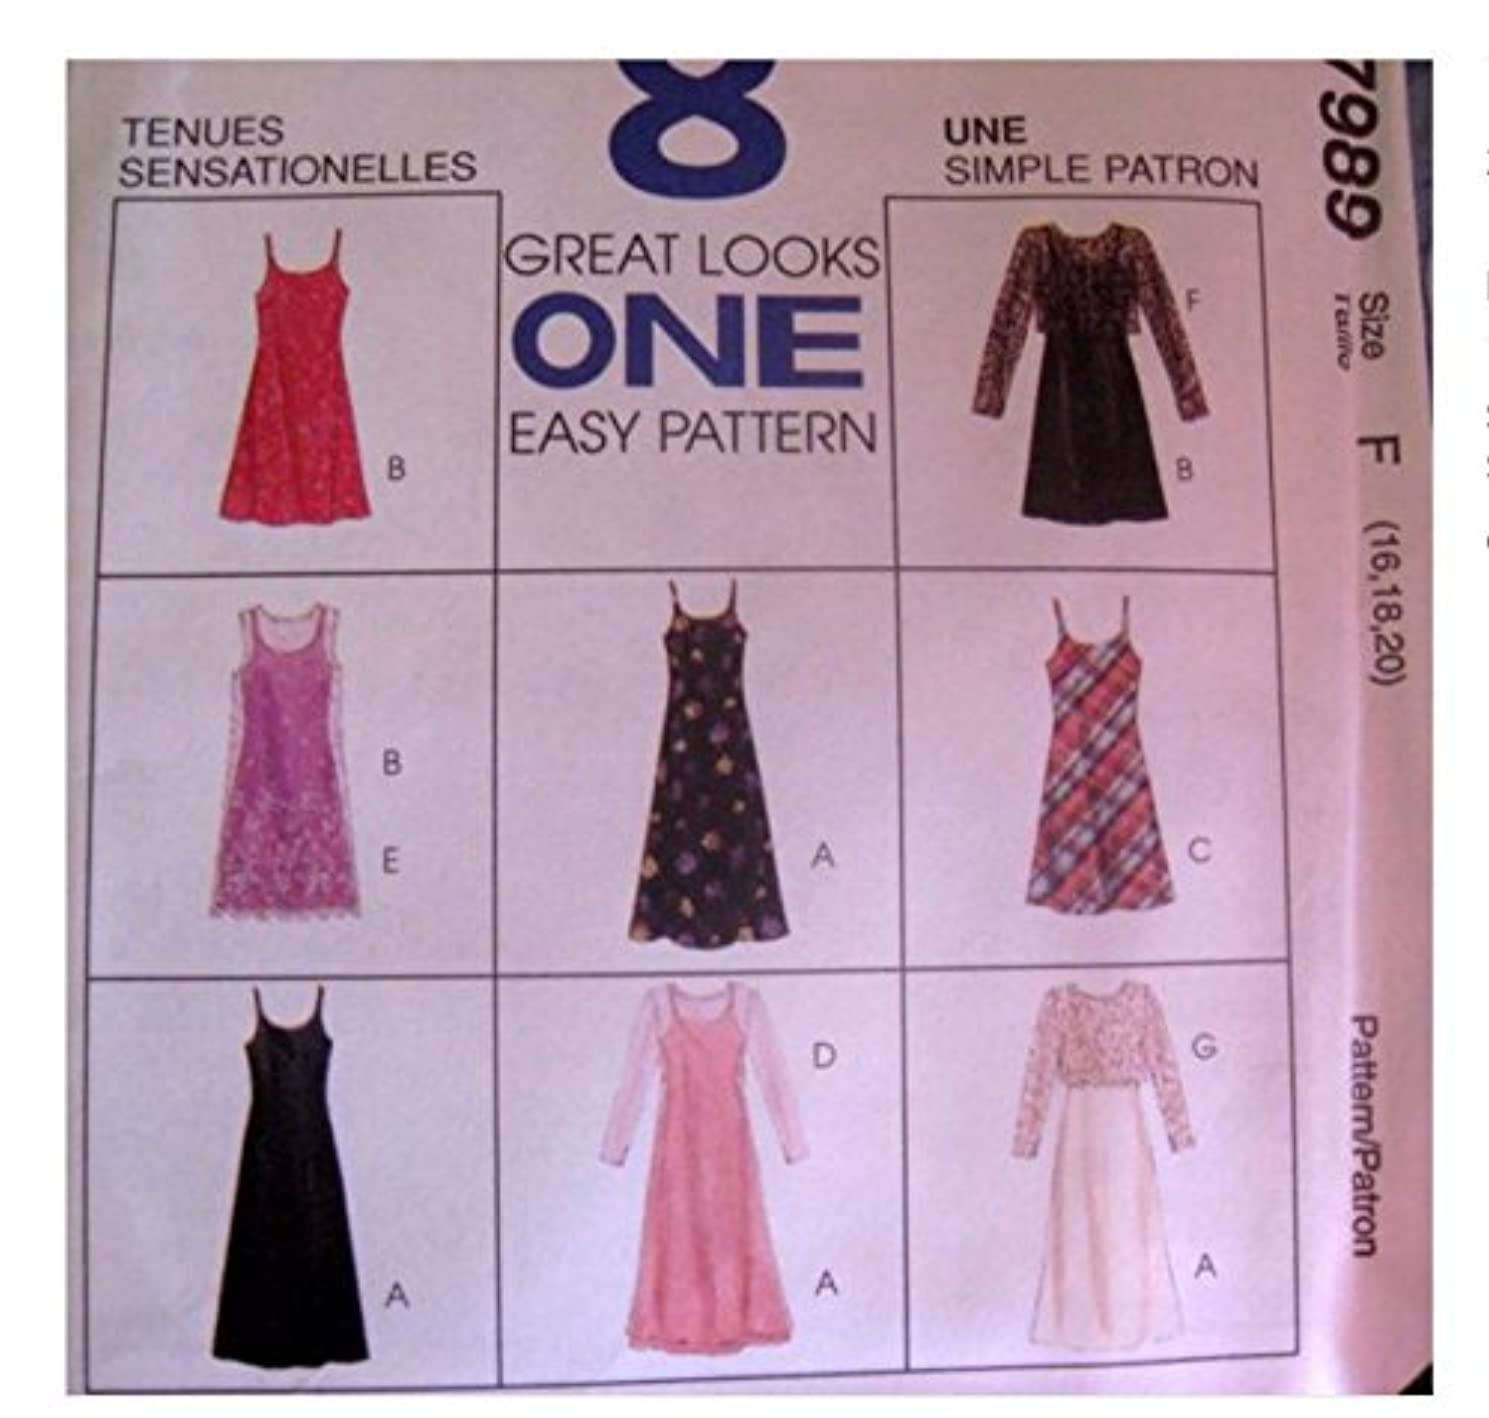 McCalls Sewing Pattern 7989 Misses 16,18,20 Spaghetti strap drerss 8/Variations